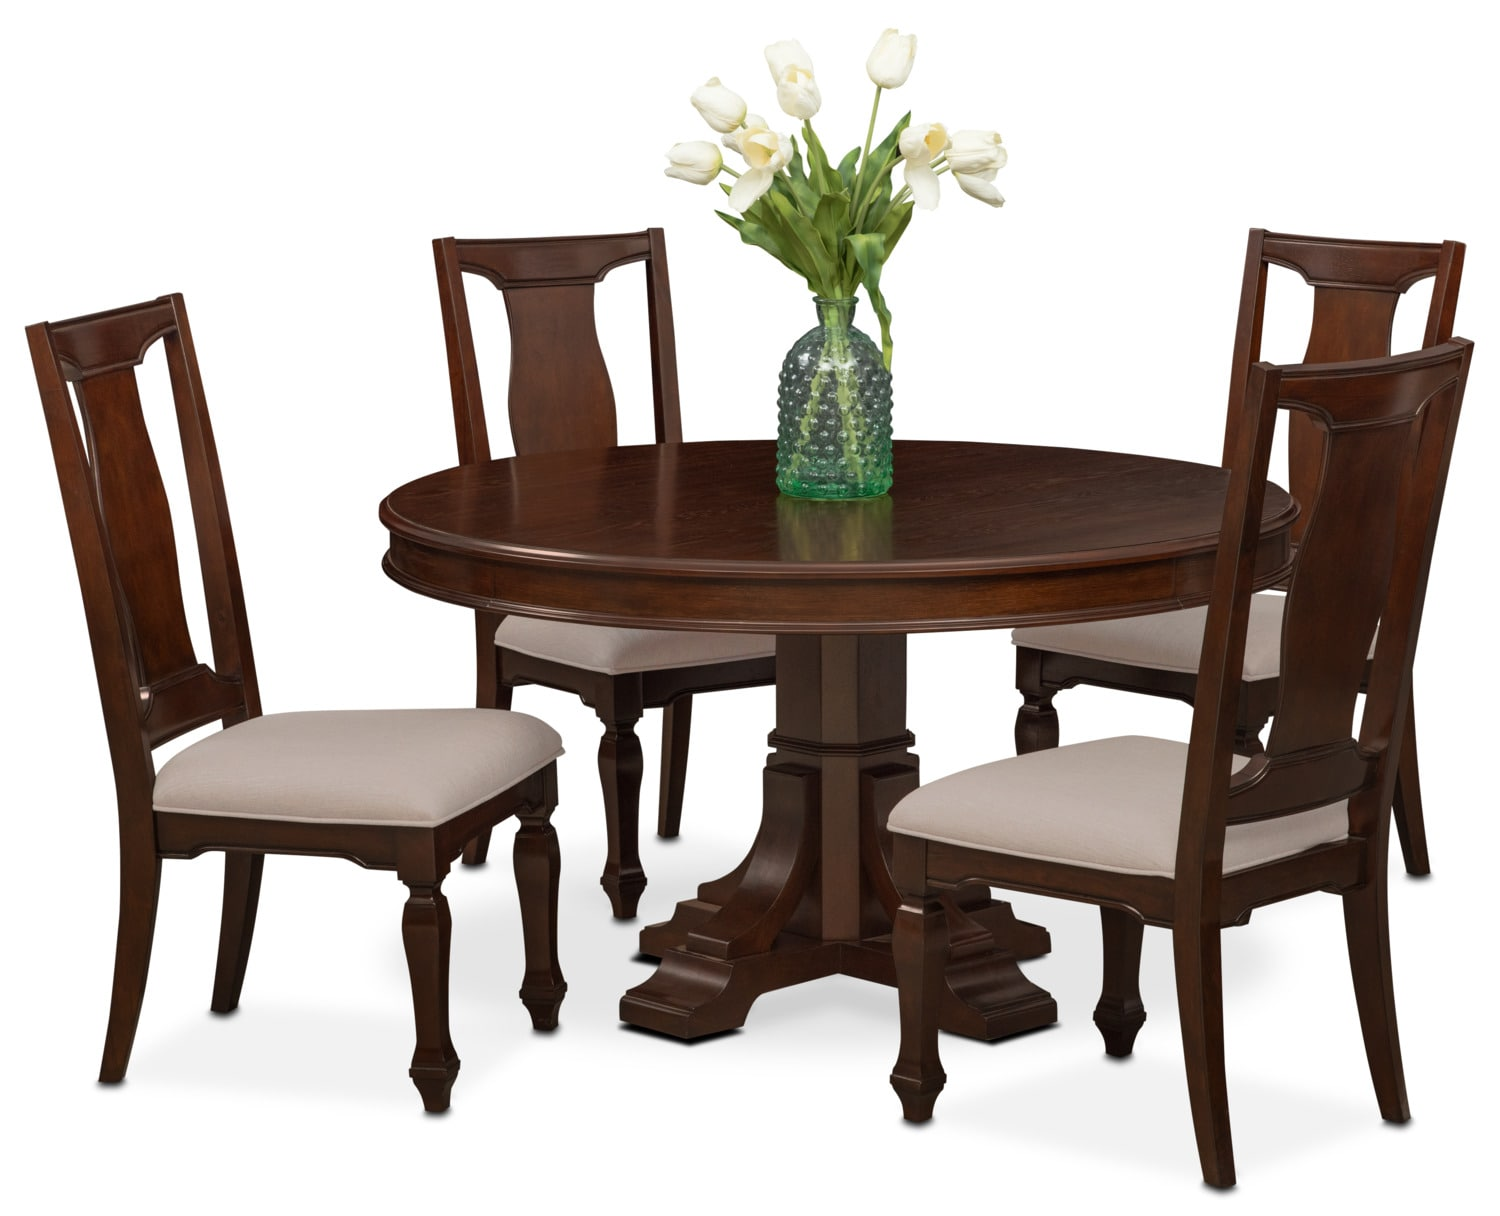 Value City Chairs Vienna Round Dining Table And 4 Side Chairs Merlot